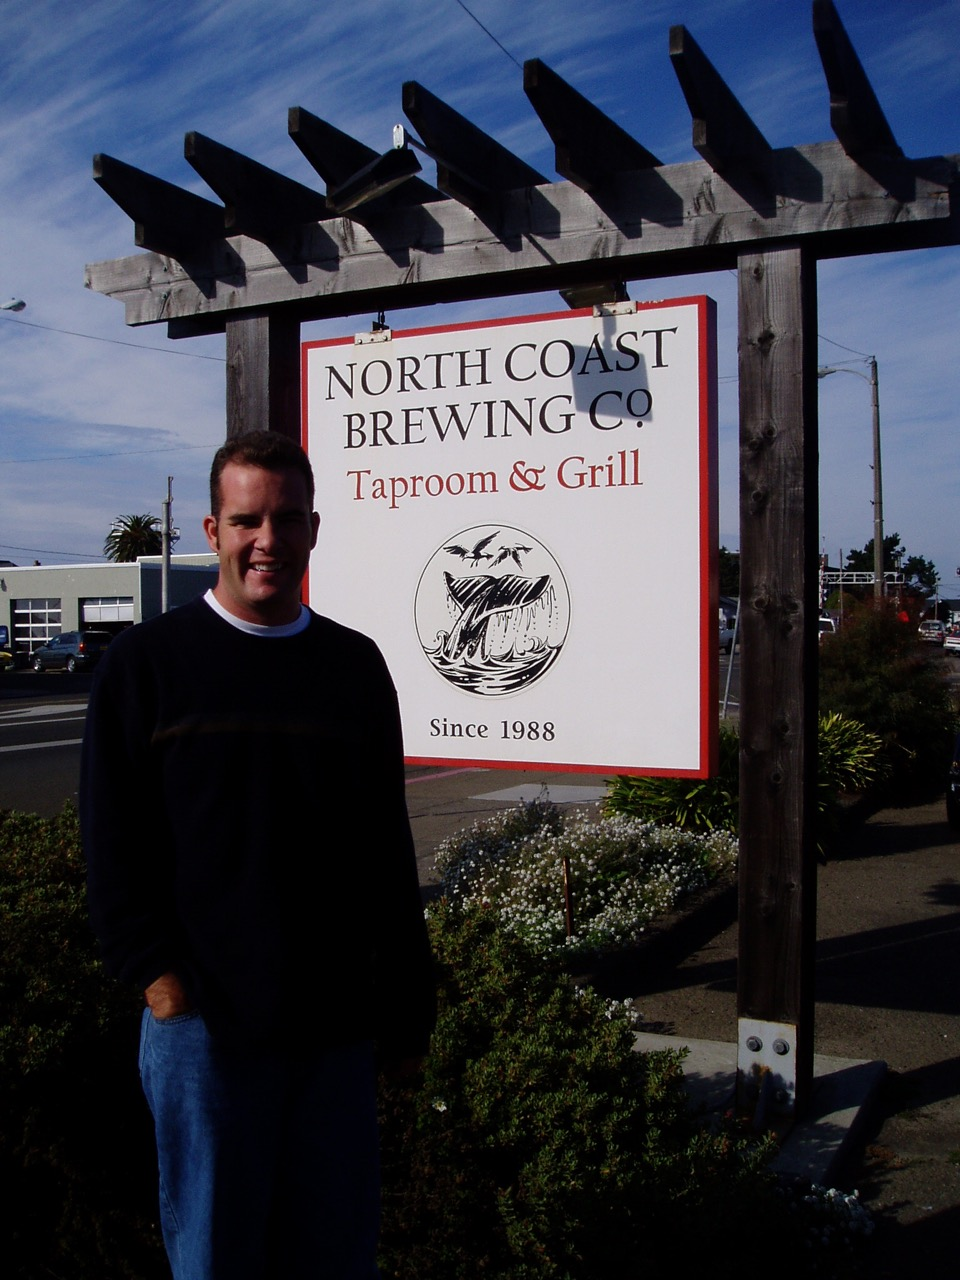 North Coast Brewing Co. Fort Bragg California